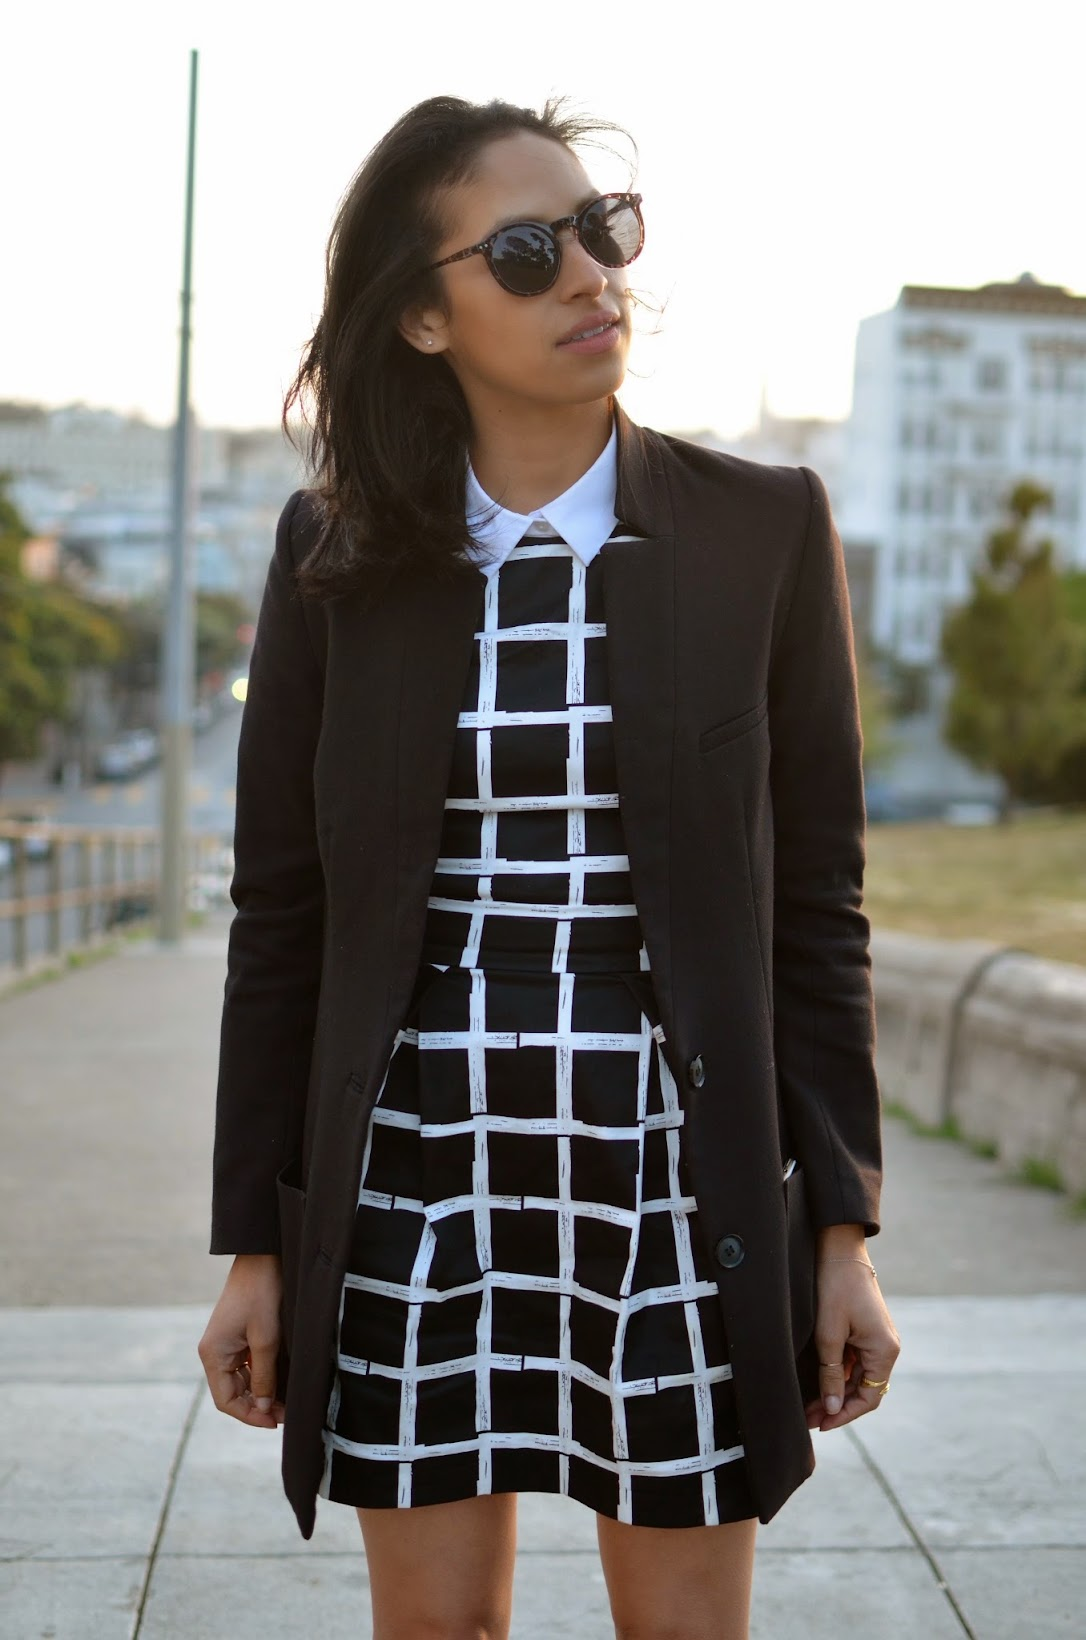 work style, work chic, windowpane dress, windowpane print, what to wear to work, what to wear on Monday, Ariat black riding boots, black riding boots, Riding boots